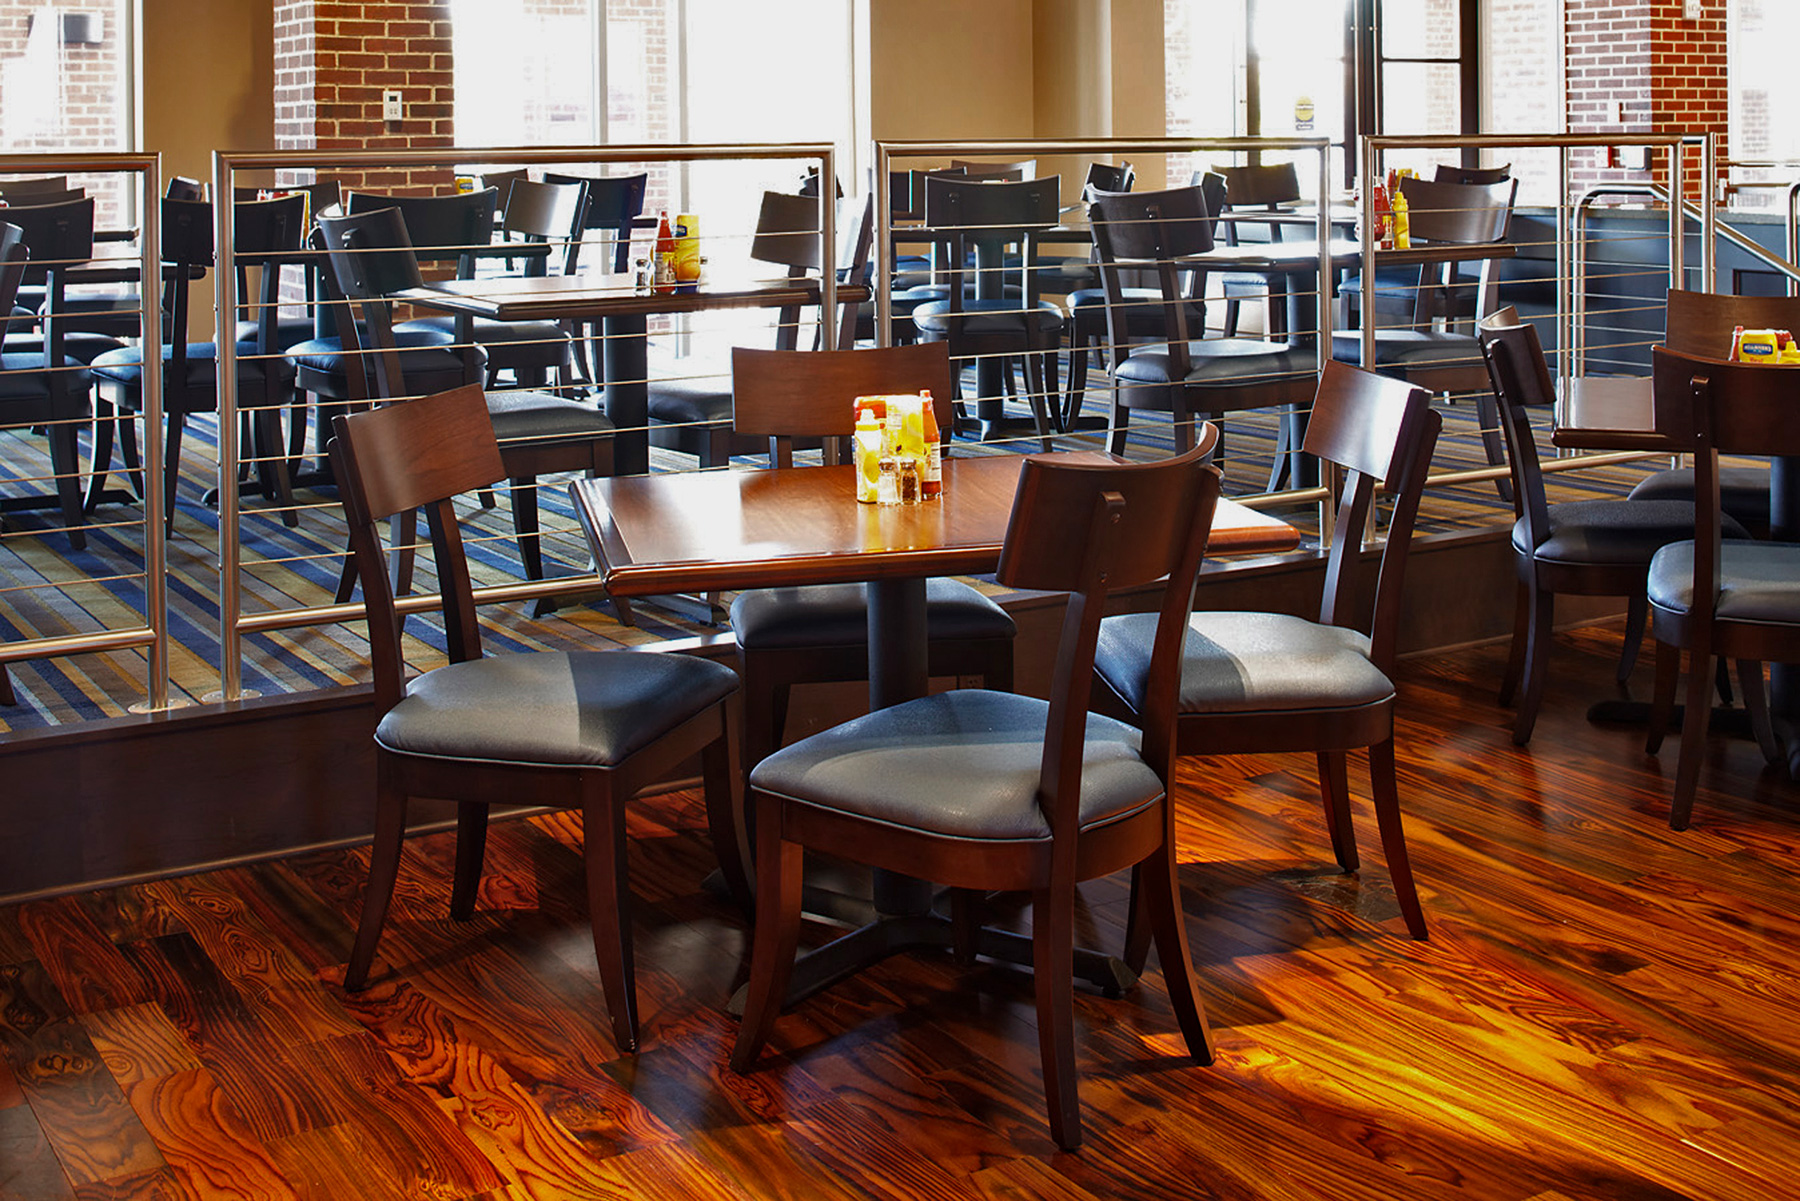 F3 dining furniture campus student living